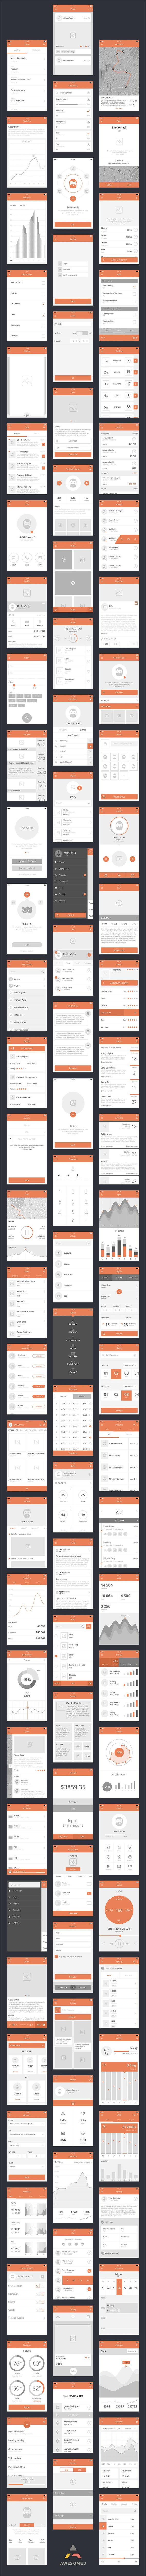 ios-prototyping-ui-kit